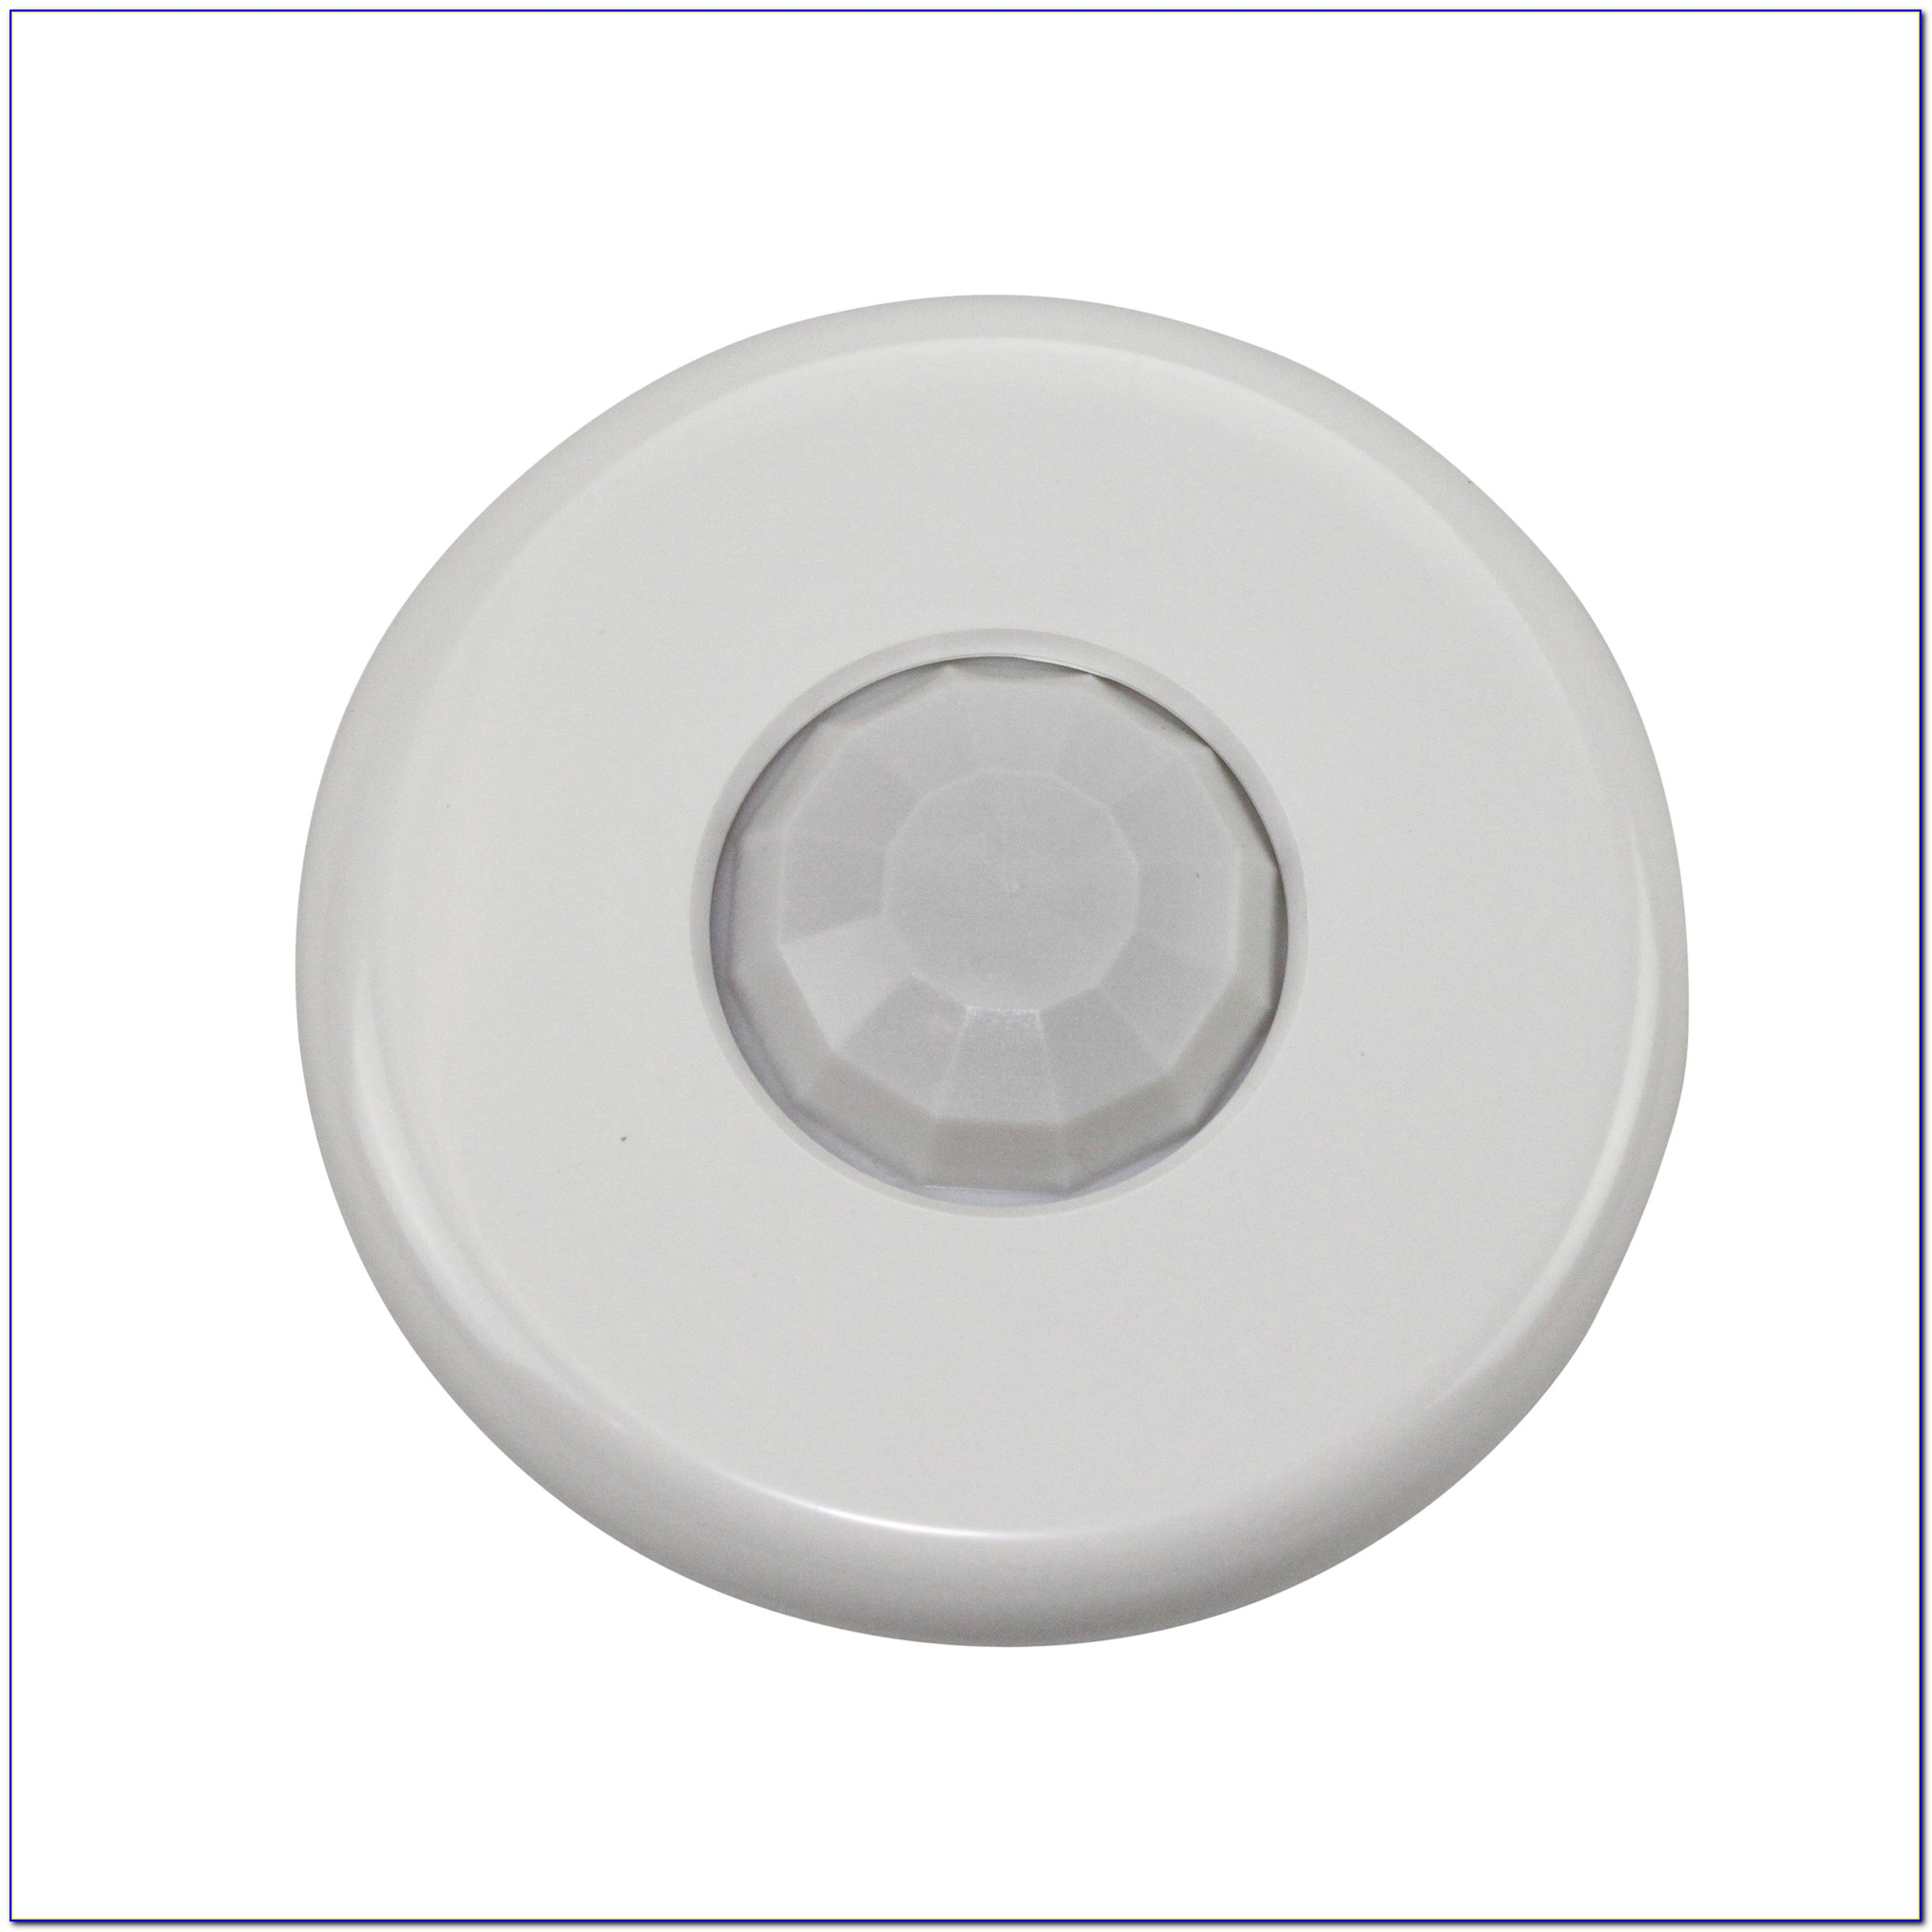 Lutron Ceiling Mounted Occupancy Sensor